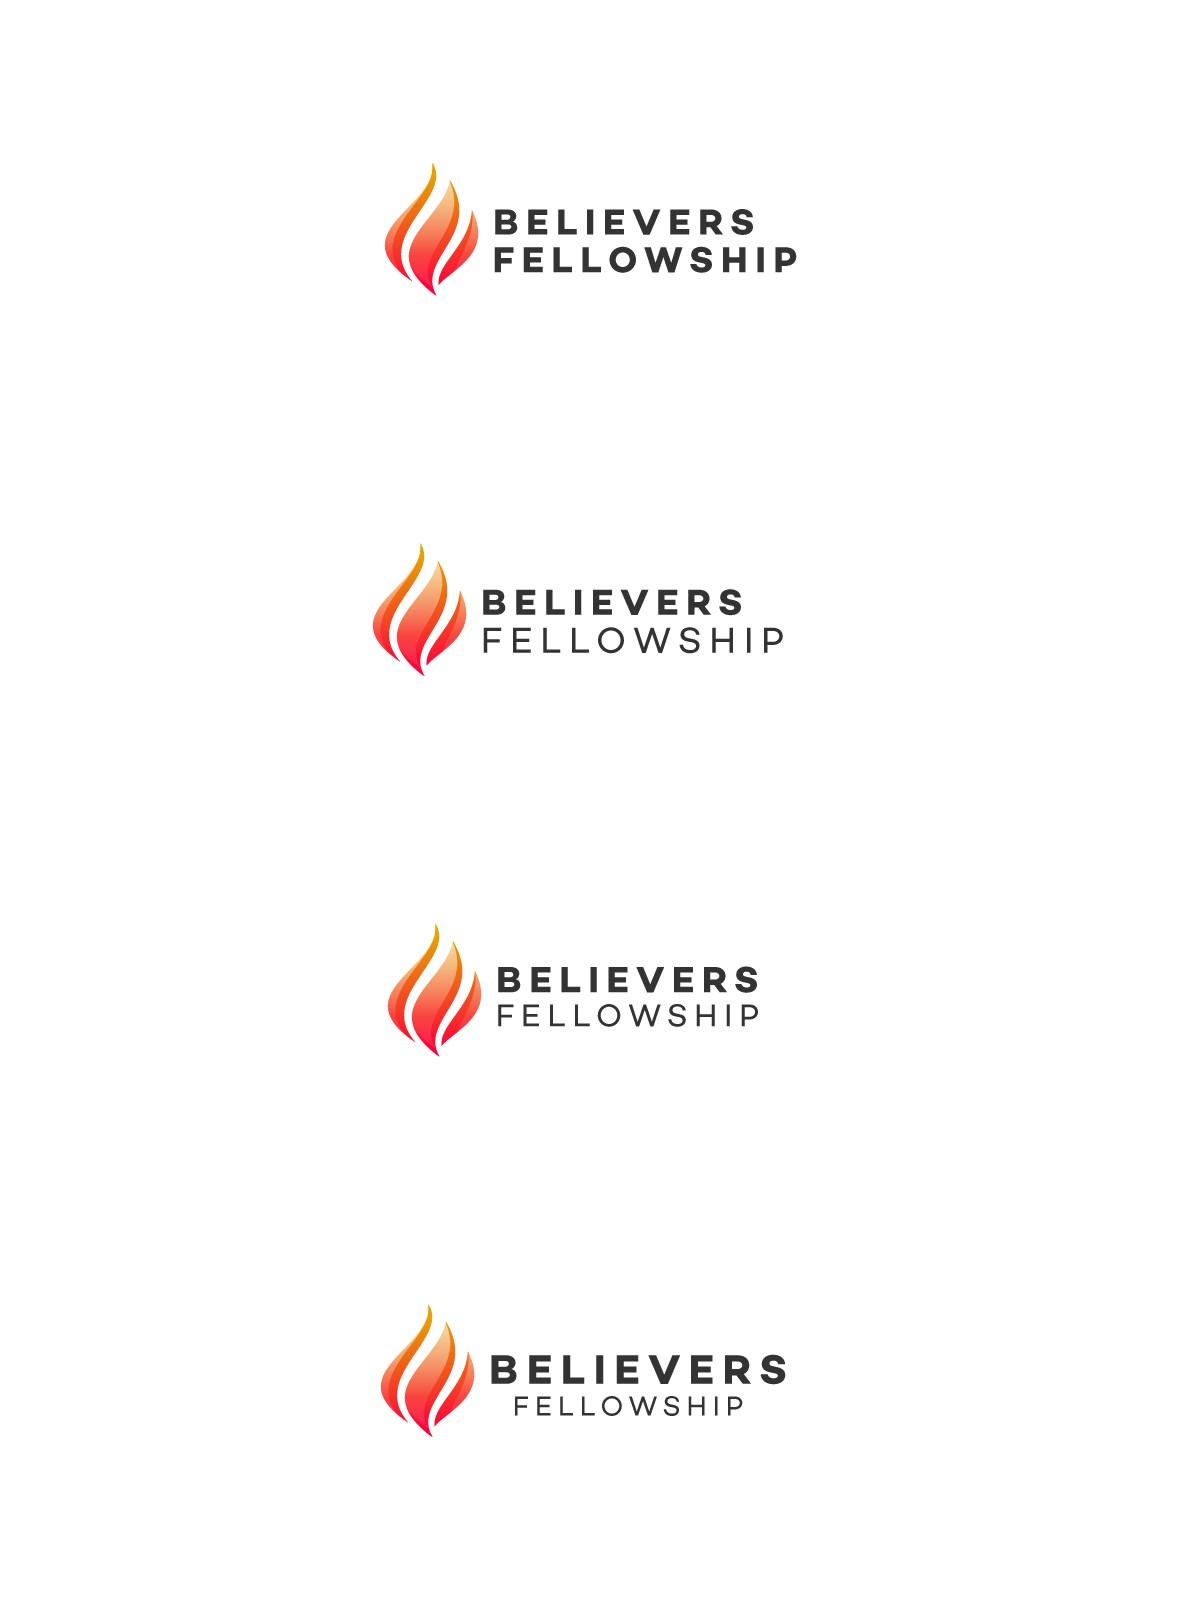 Create eye-catching logo/icon for our church app.